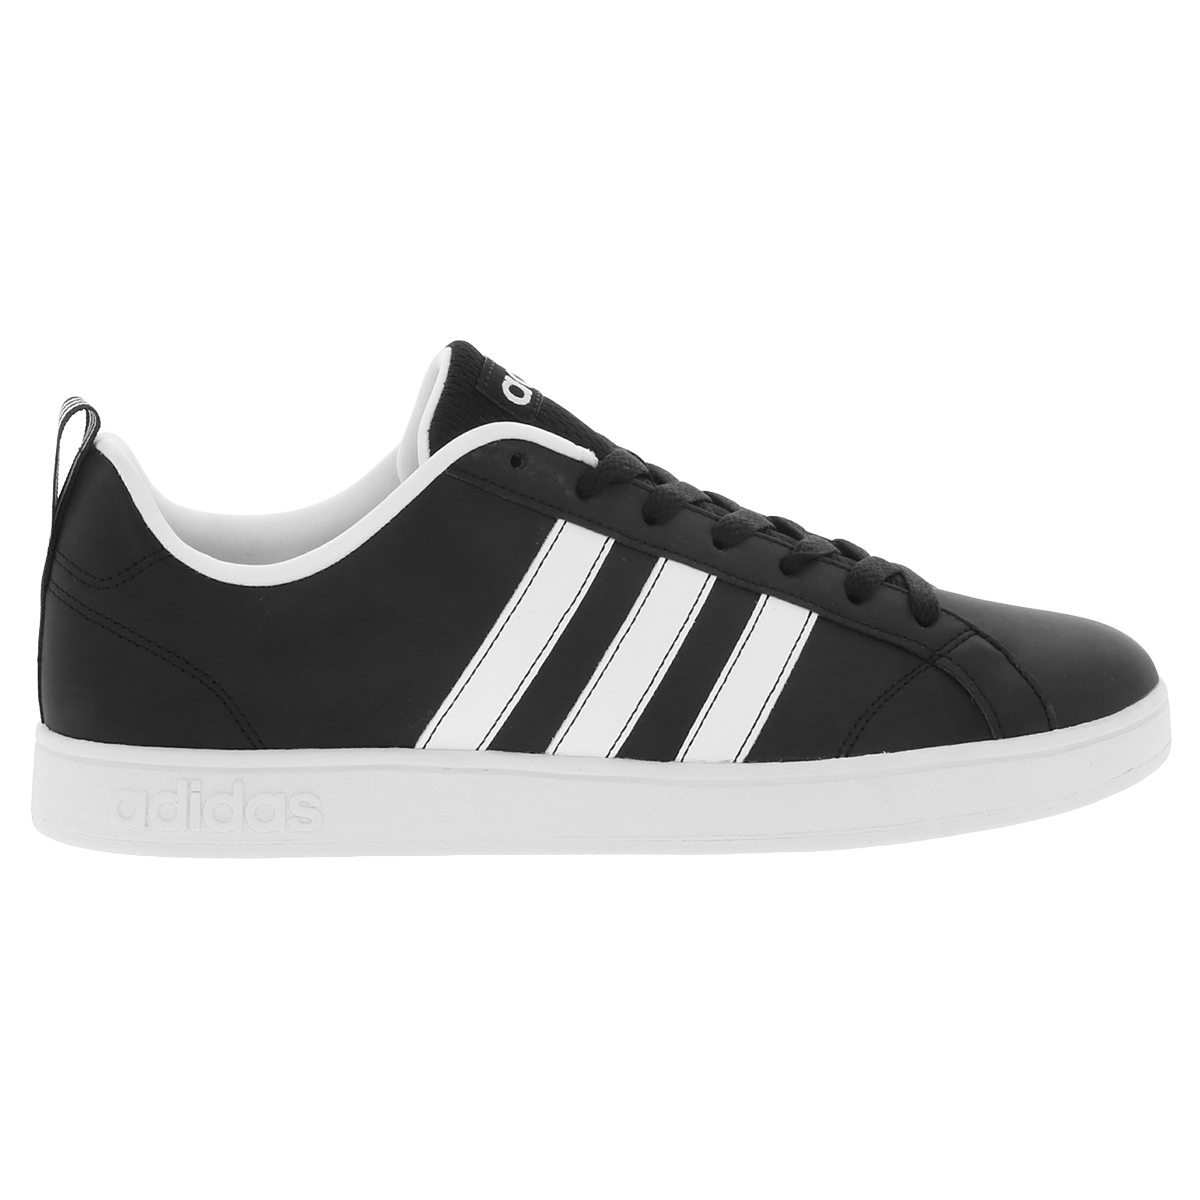 Superstar Originals Adidas Smith Sneakers Stan PNG Image